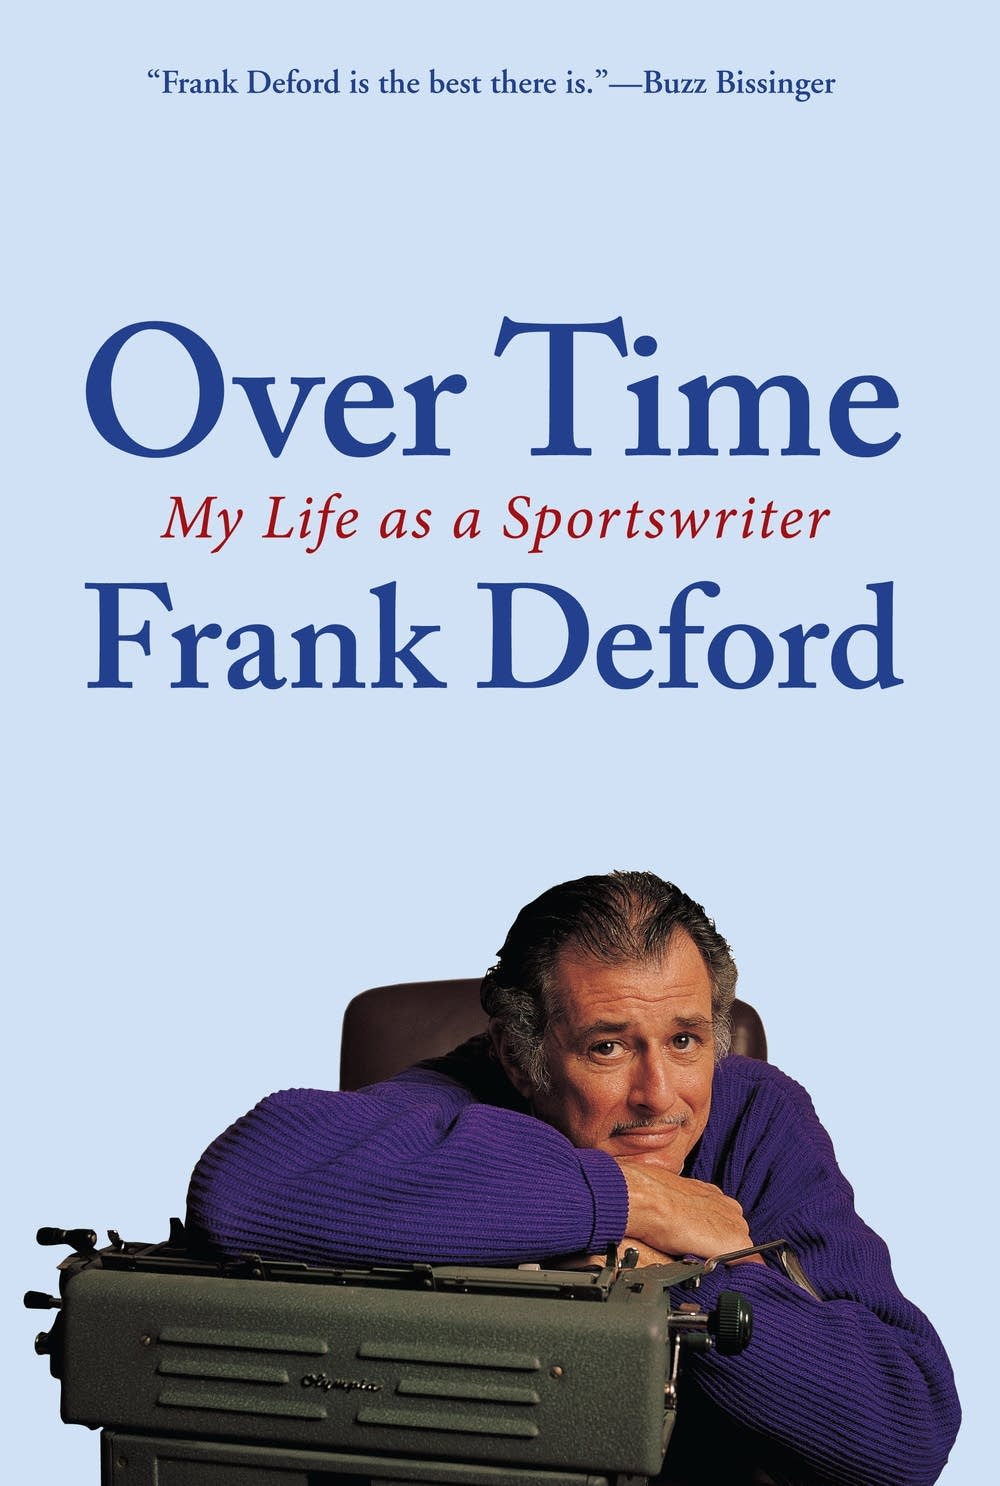 'Over Time' by Frank Deford